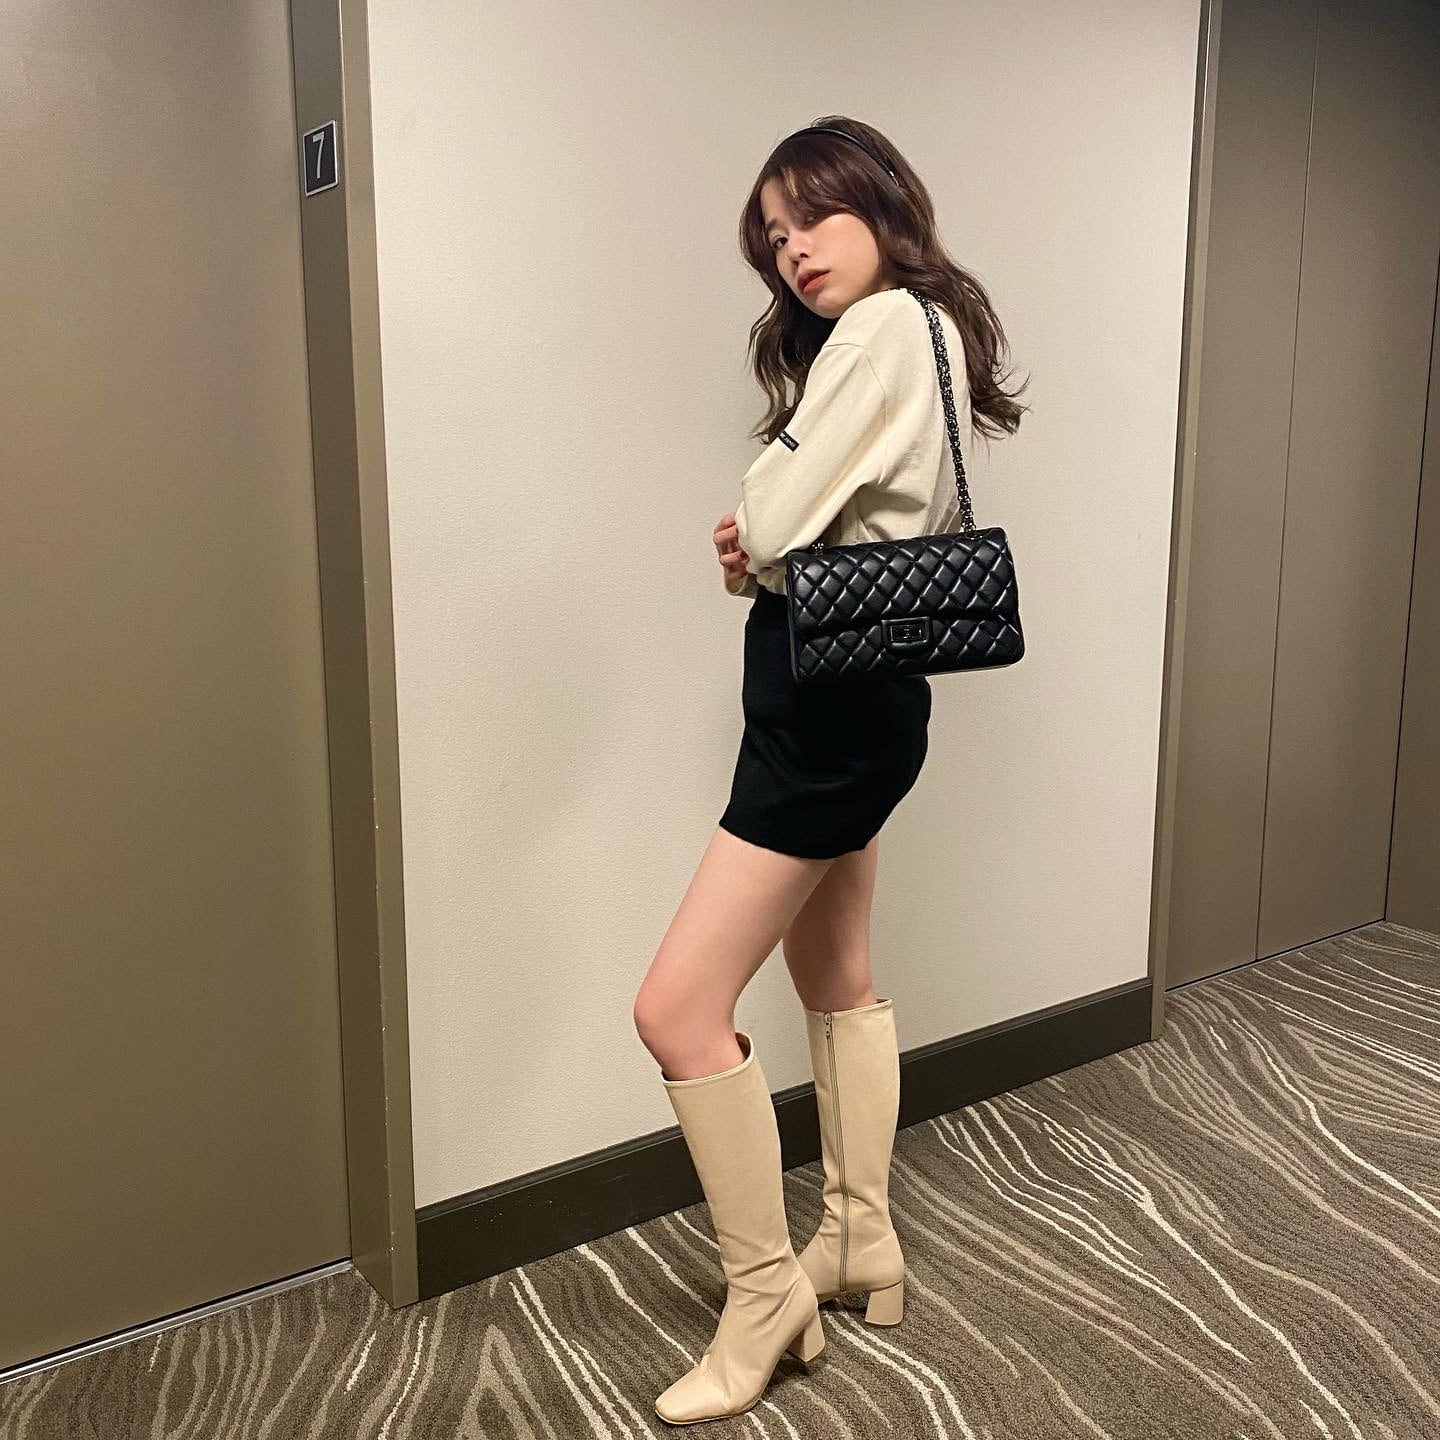 【23,23.5, 25 only】DAYNYC long boots